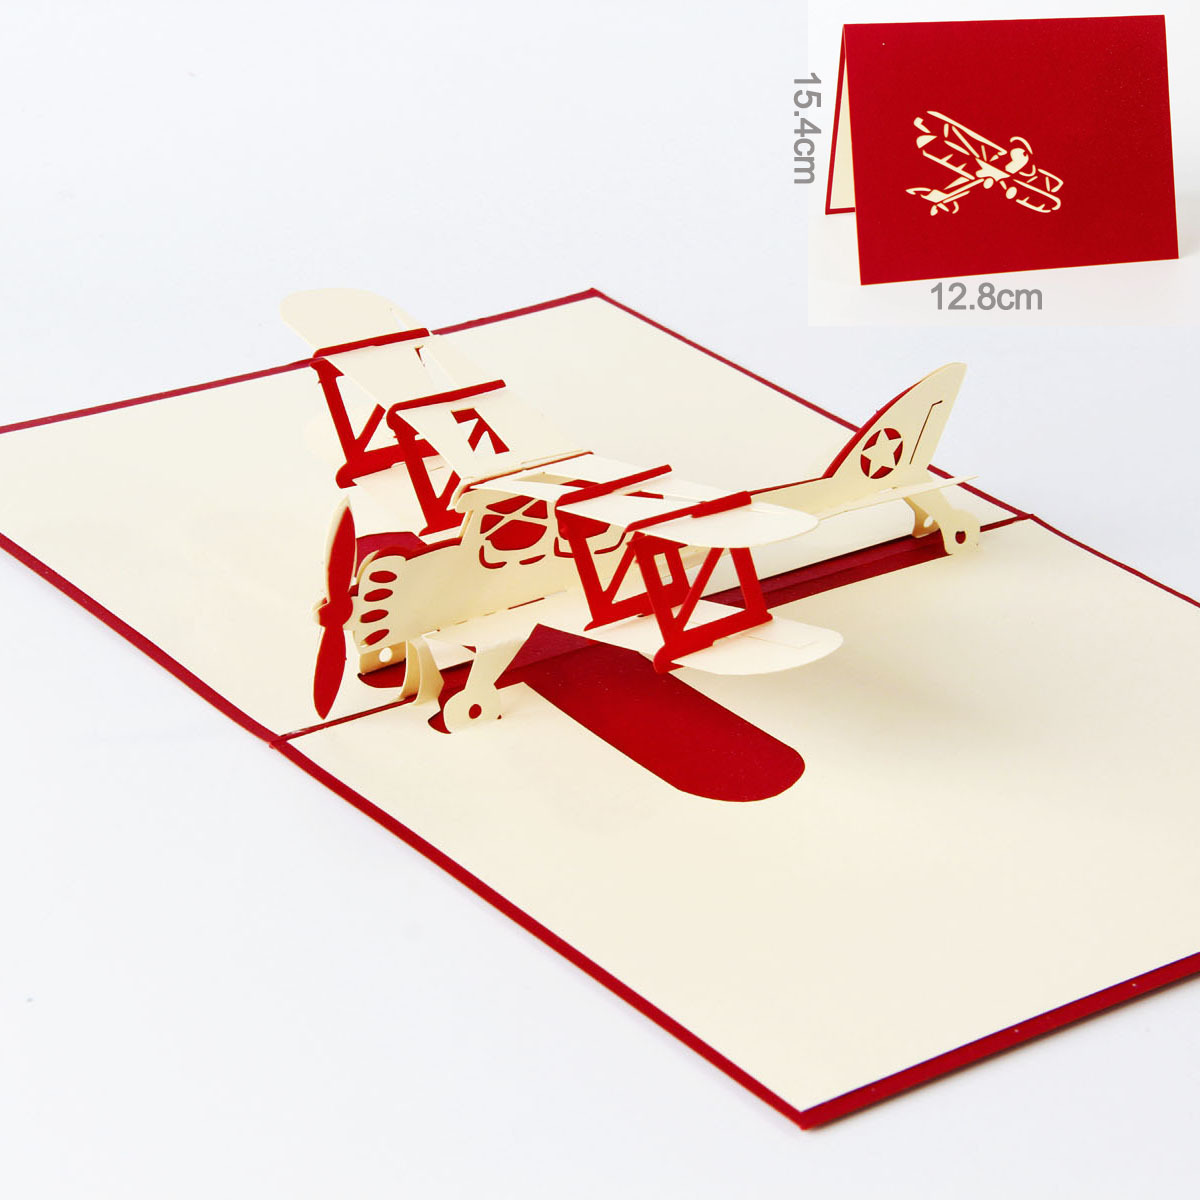 все цены на  10pcs/lot 3D Paper Laser Cut Carving Aircraft Plane PostCard Greeting Cards Party Invitation Card Children Kids Creative Gift  онлайн